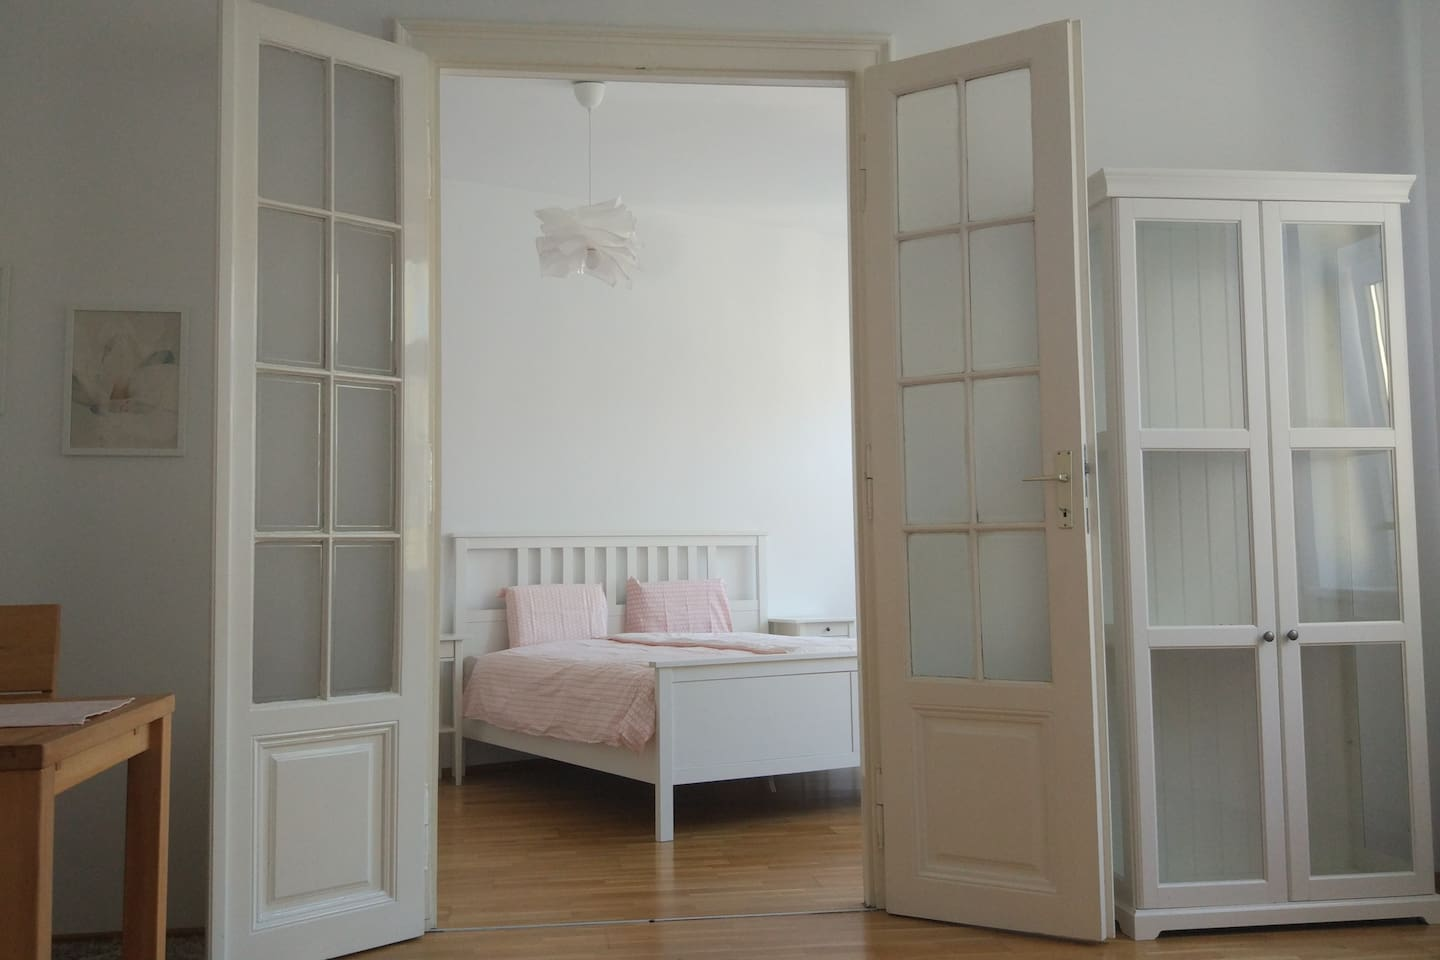 it is 2 room simple layout (view from the living room into the bedroom). Bedroom with a king size 160 x 200 CMs bed.